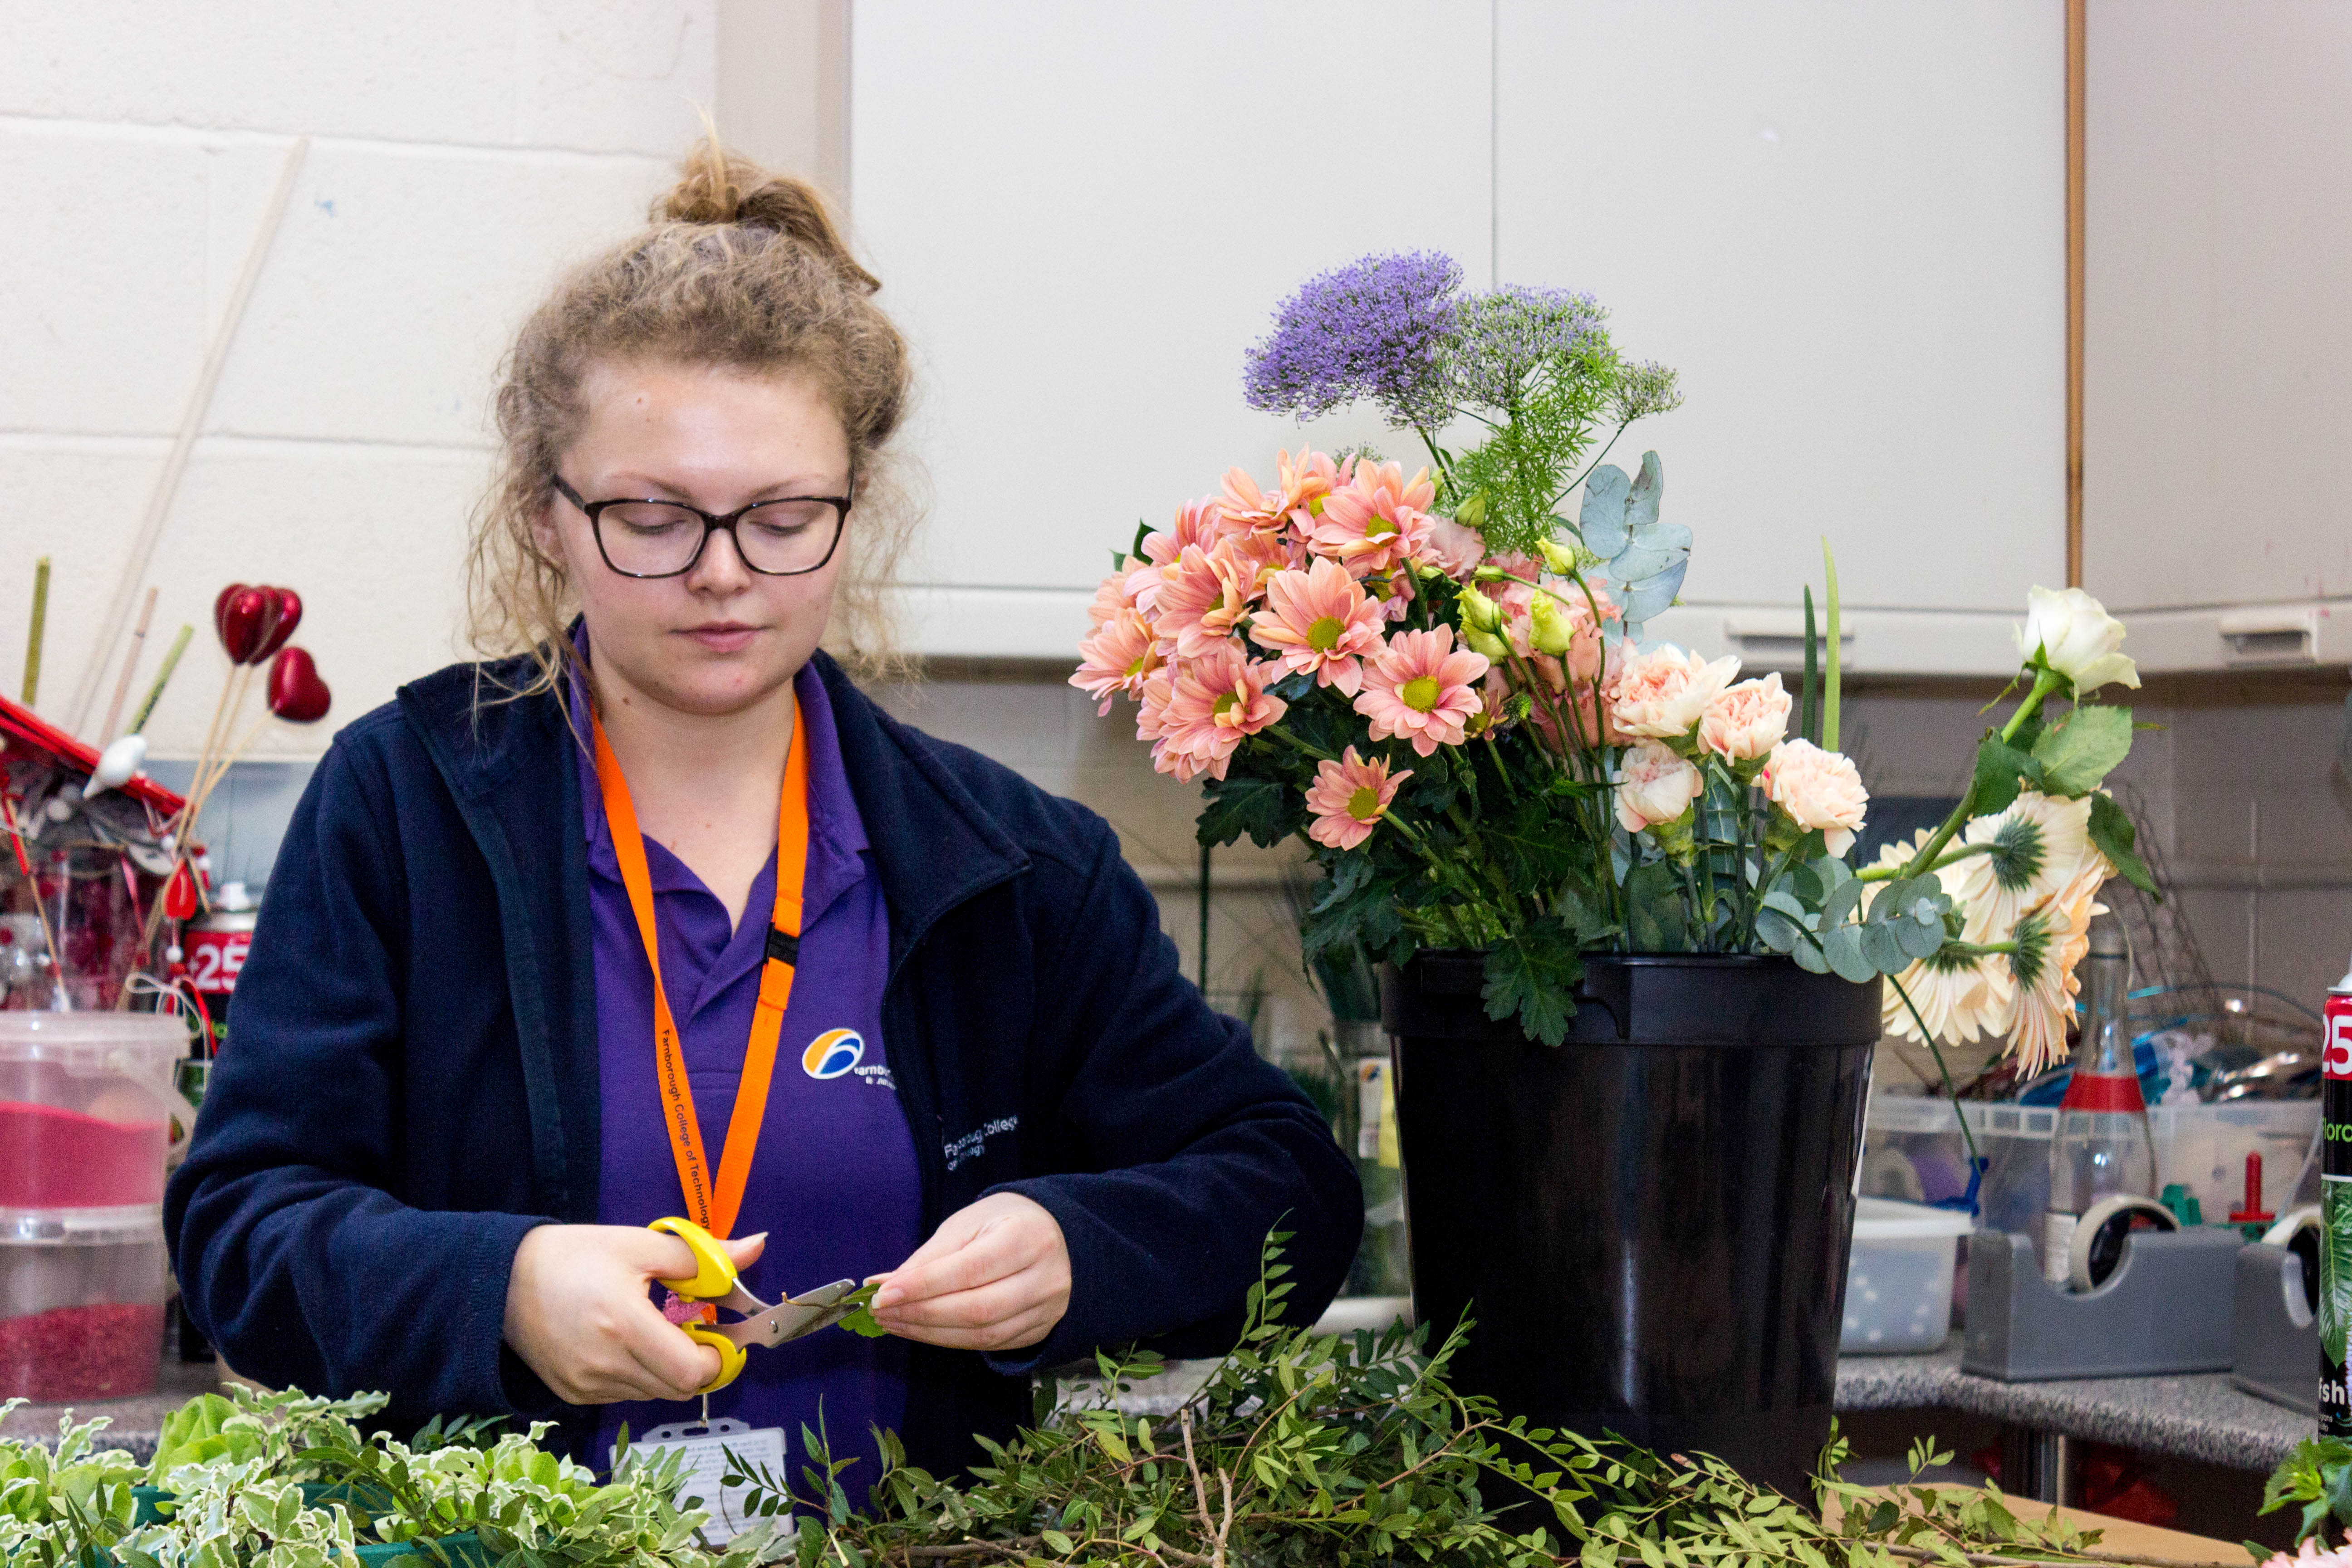 Floristry student set working in the floristy studio